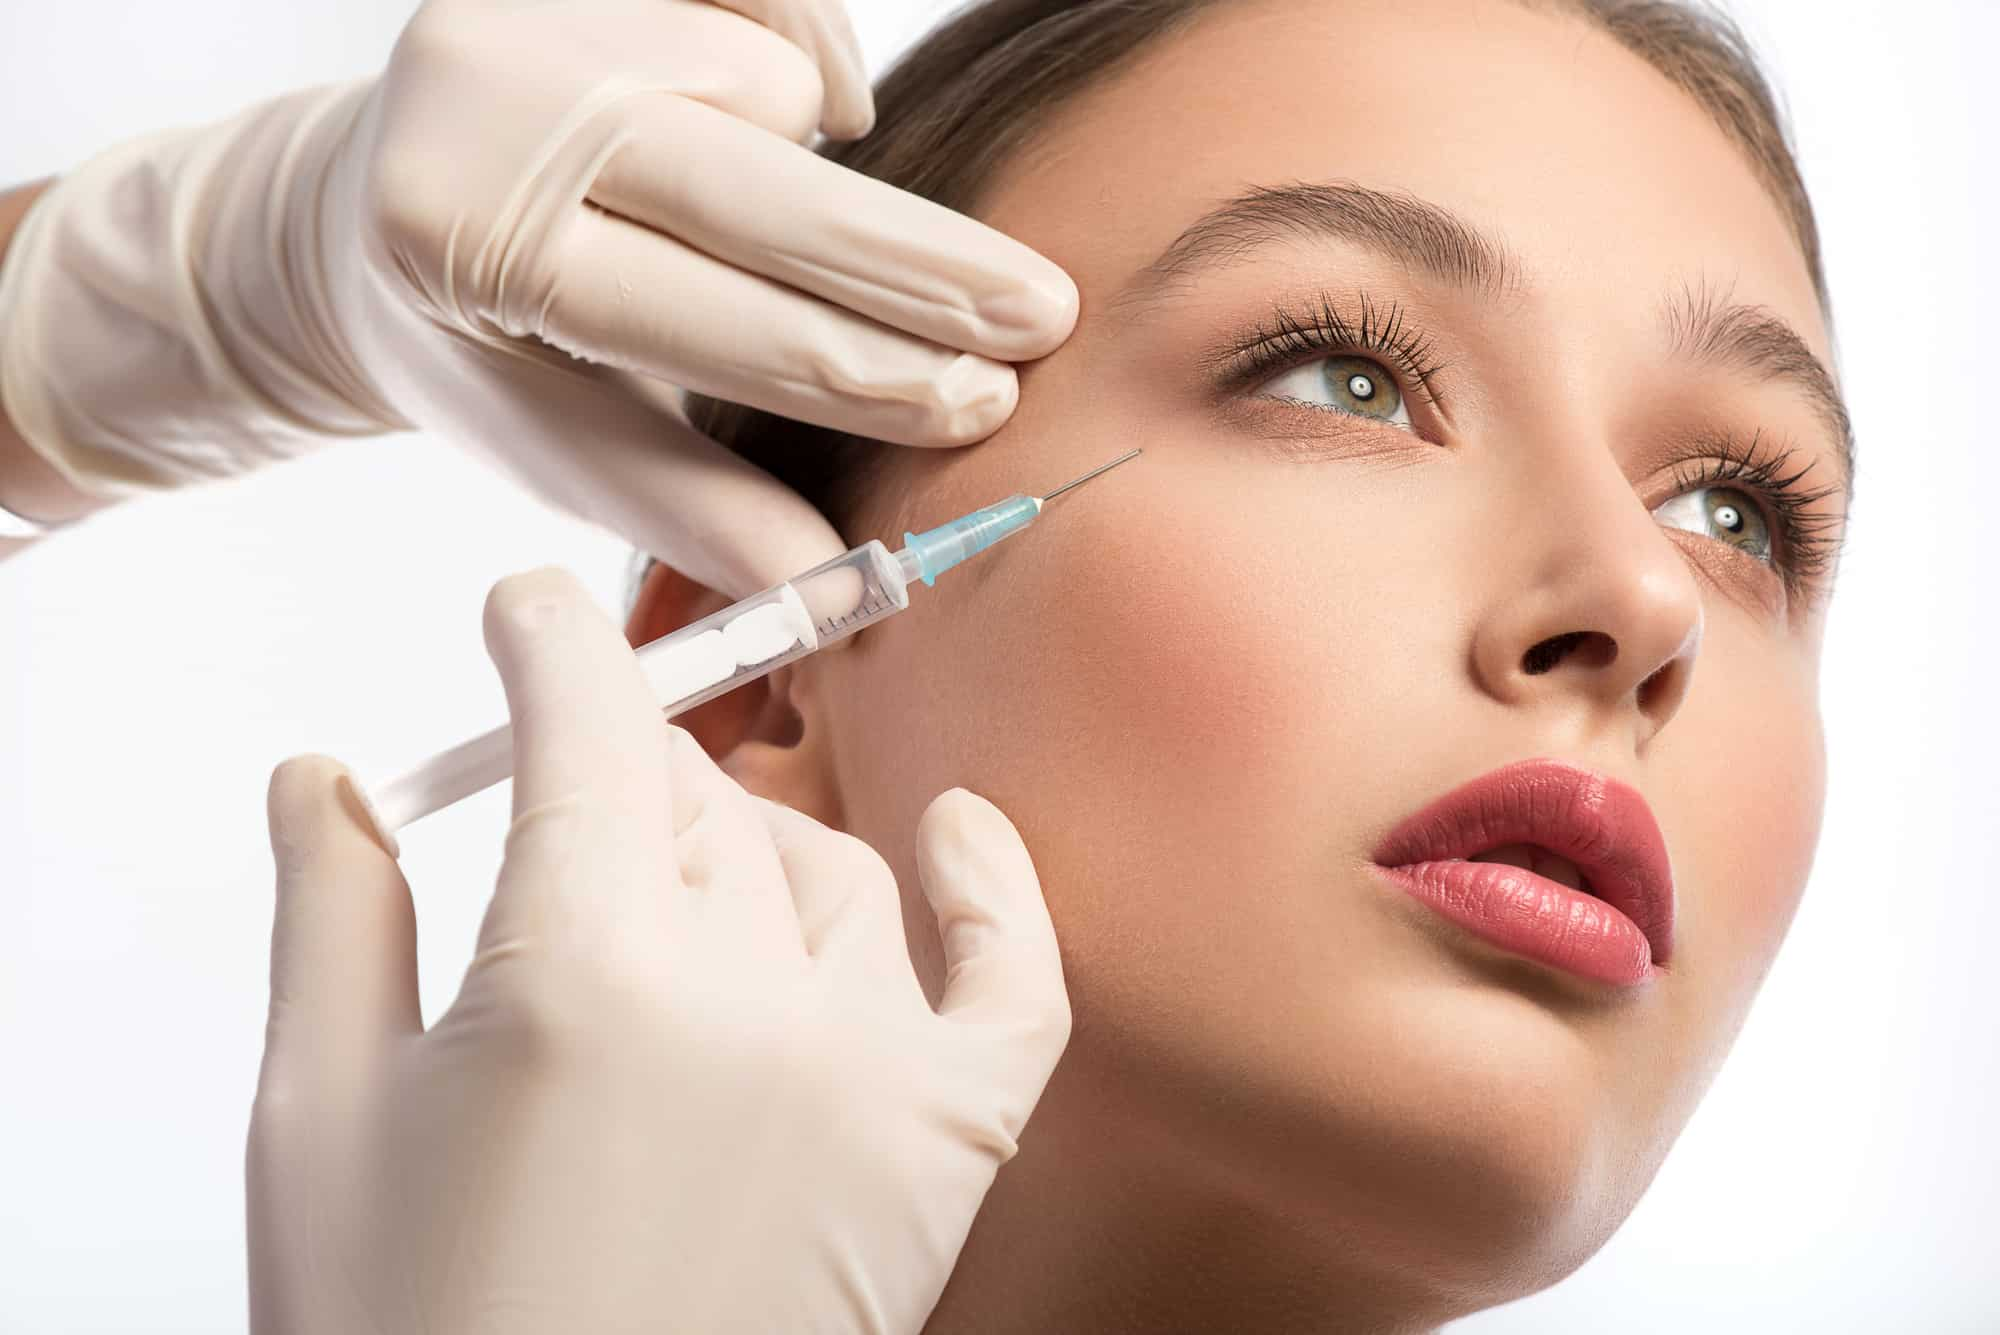 My Bliss Clinic Dermal Filler Treatment Blog Nov First Image